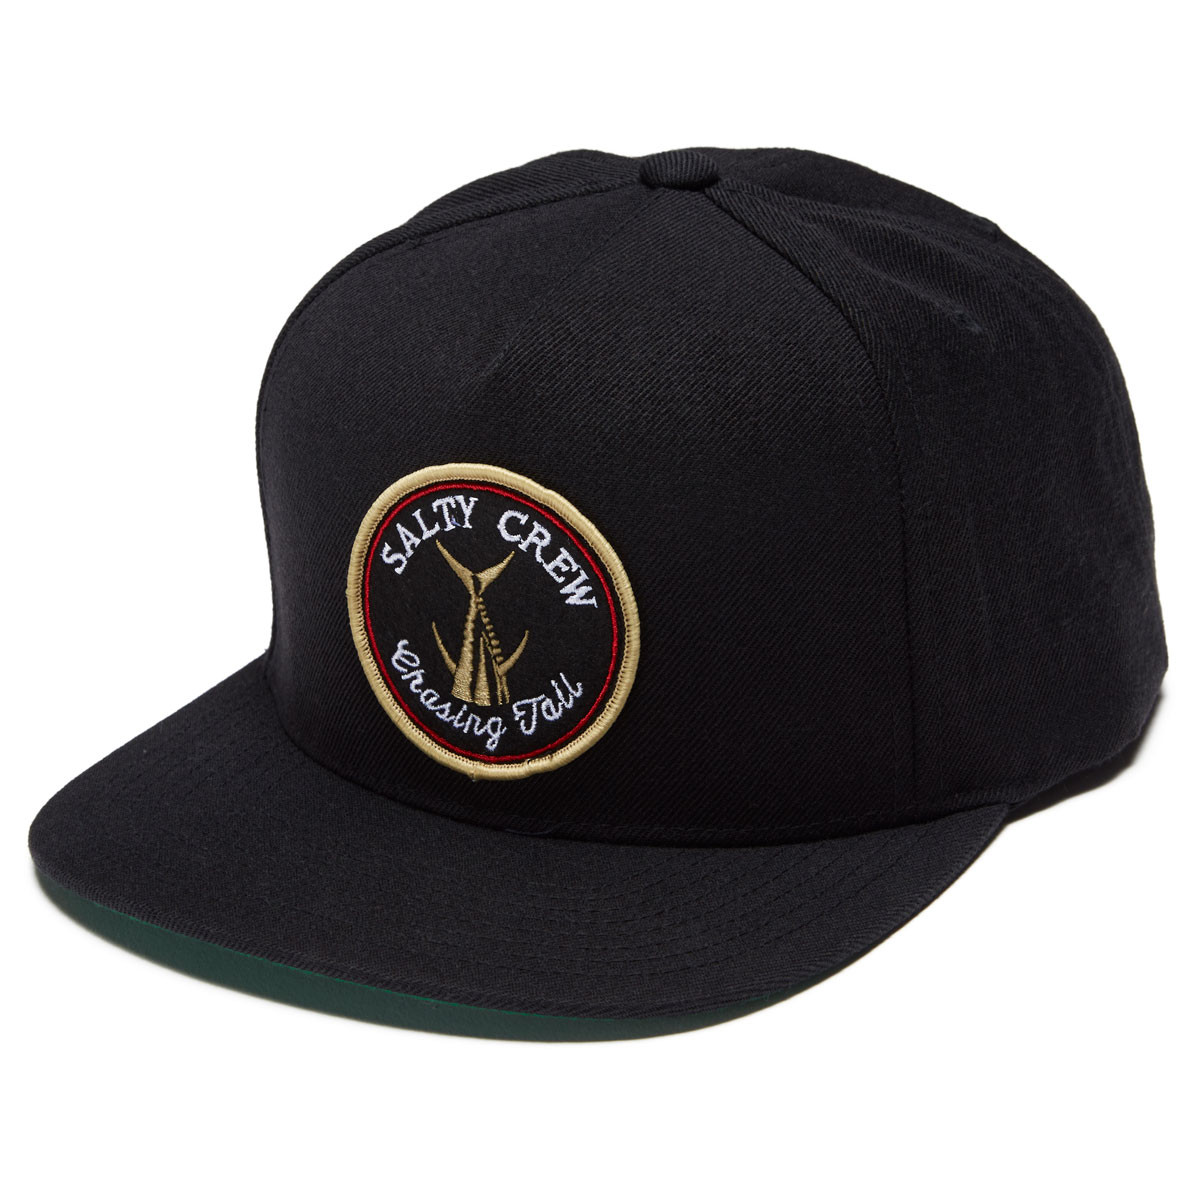 new concept 958e8 9a745 get salty crew tails up 5 panel hat black 0ab84 60e3d